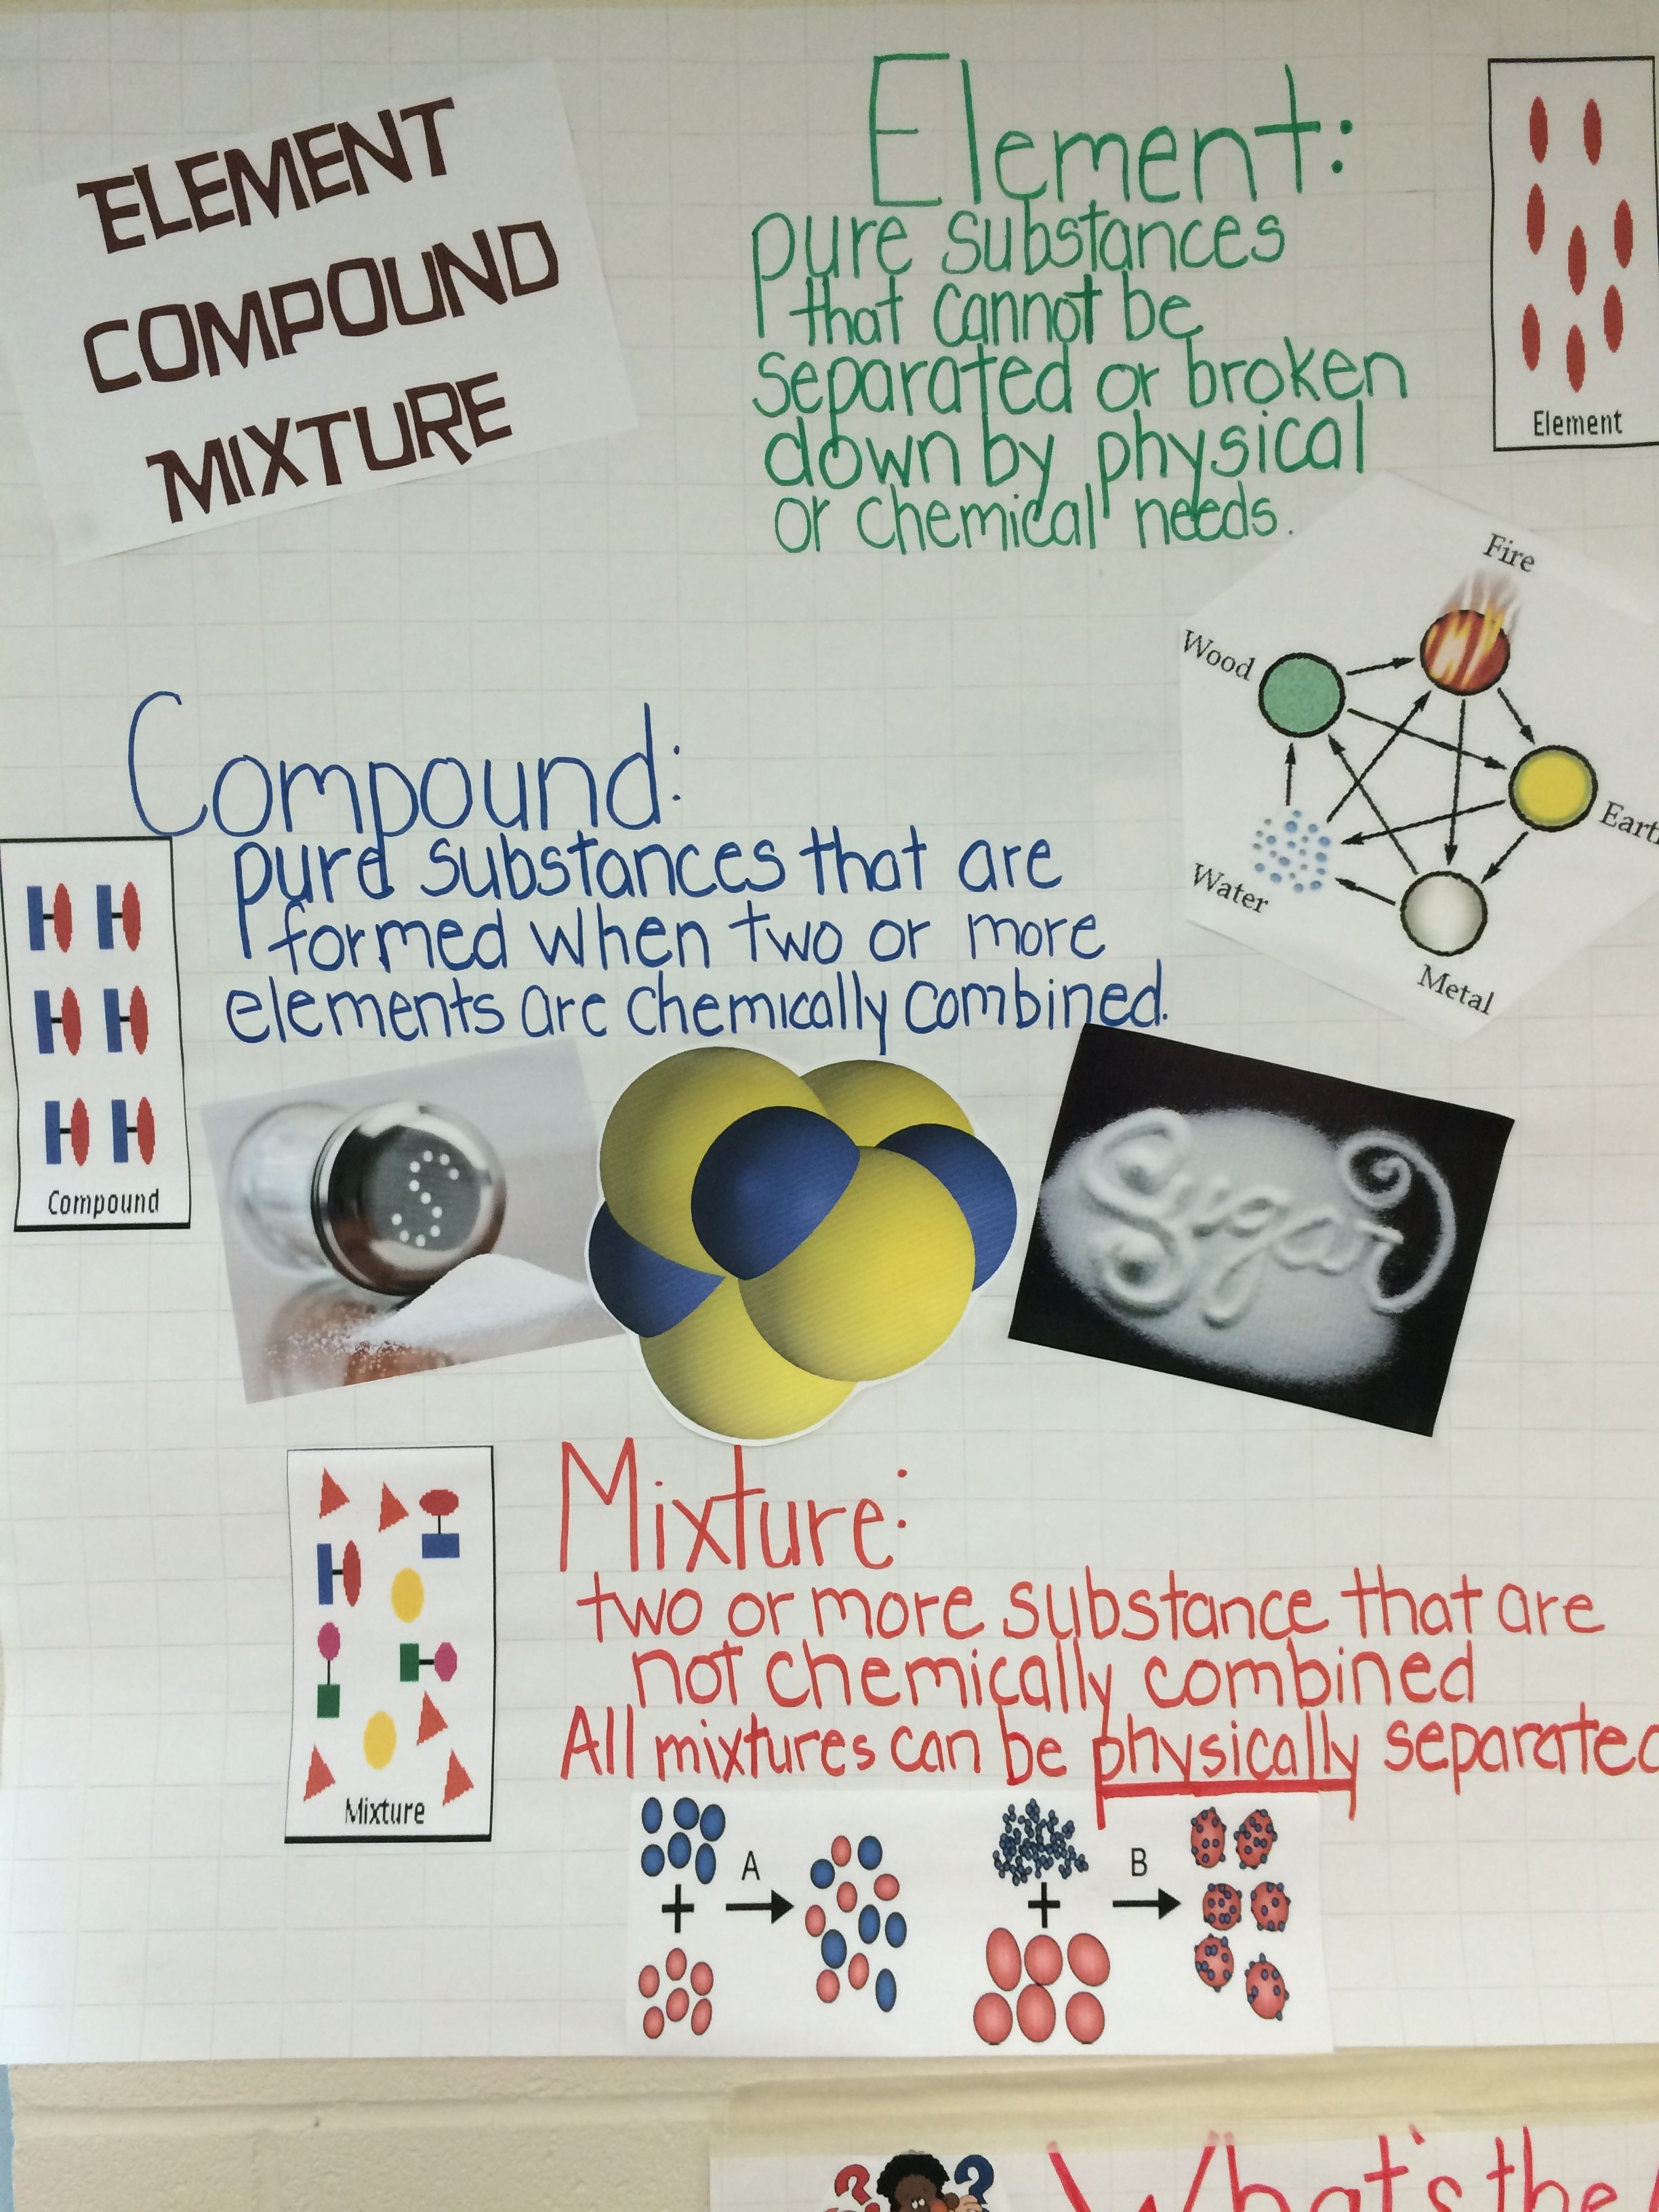 Elements compounds and mixture anchor chart education pinterest elements compounds and mixture anchor chart urtaz Choice Image